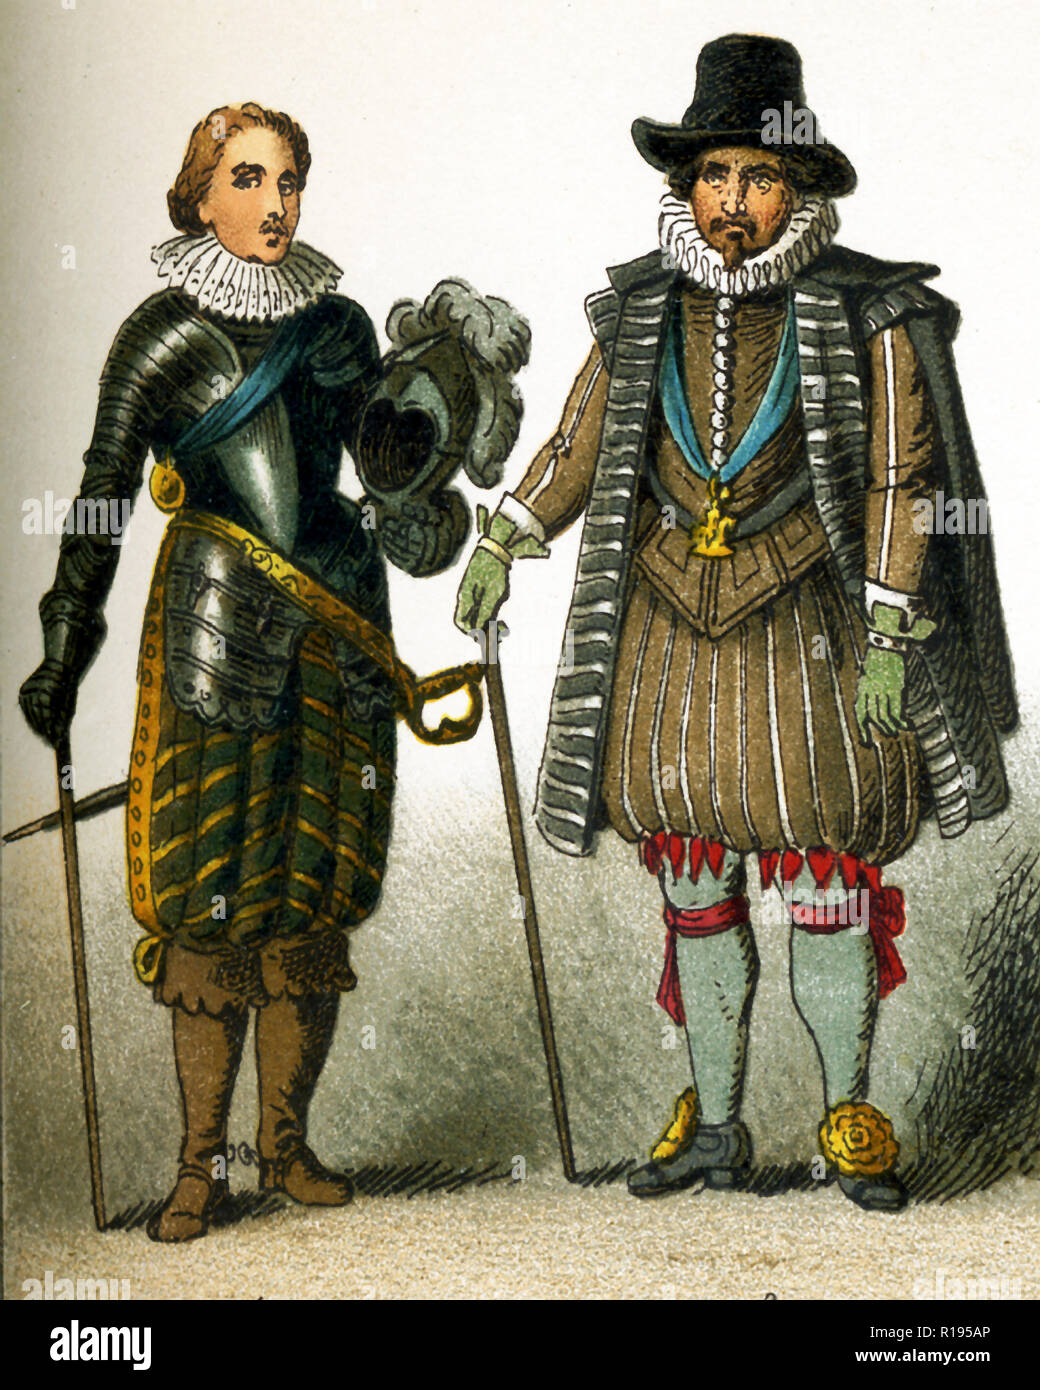 The figures represented here are all English people from the 1600s. They are, from left to right: Charles Prince of Wales and a nobleman. Charles  Prince of Wales became Charles I was king of England, Scotland, and Ireland from 1625 until his execution in 1649. He was a Stuart and the second son of James VI of Scotland. The illustration dates to 1882. - Stock Image